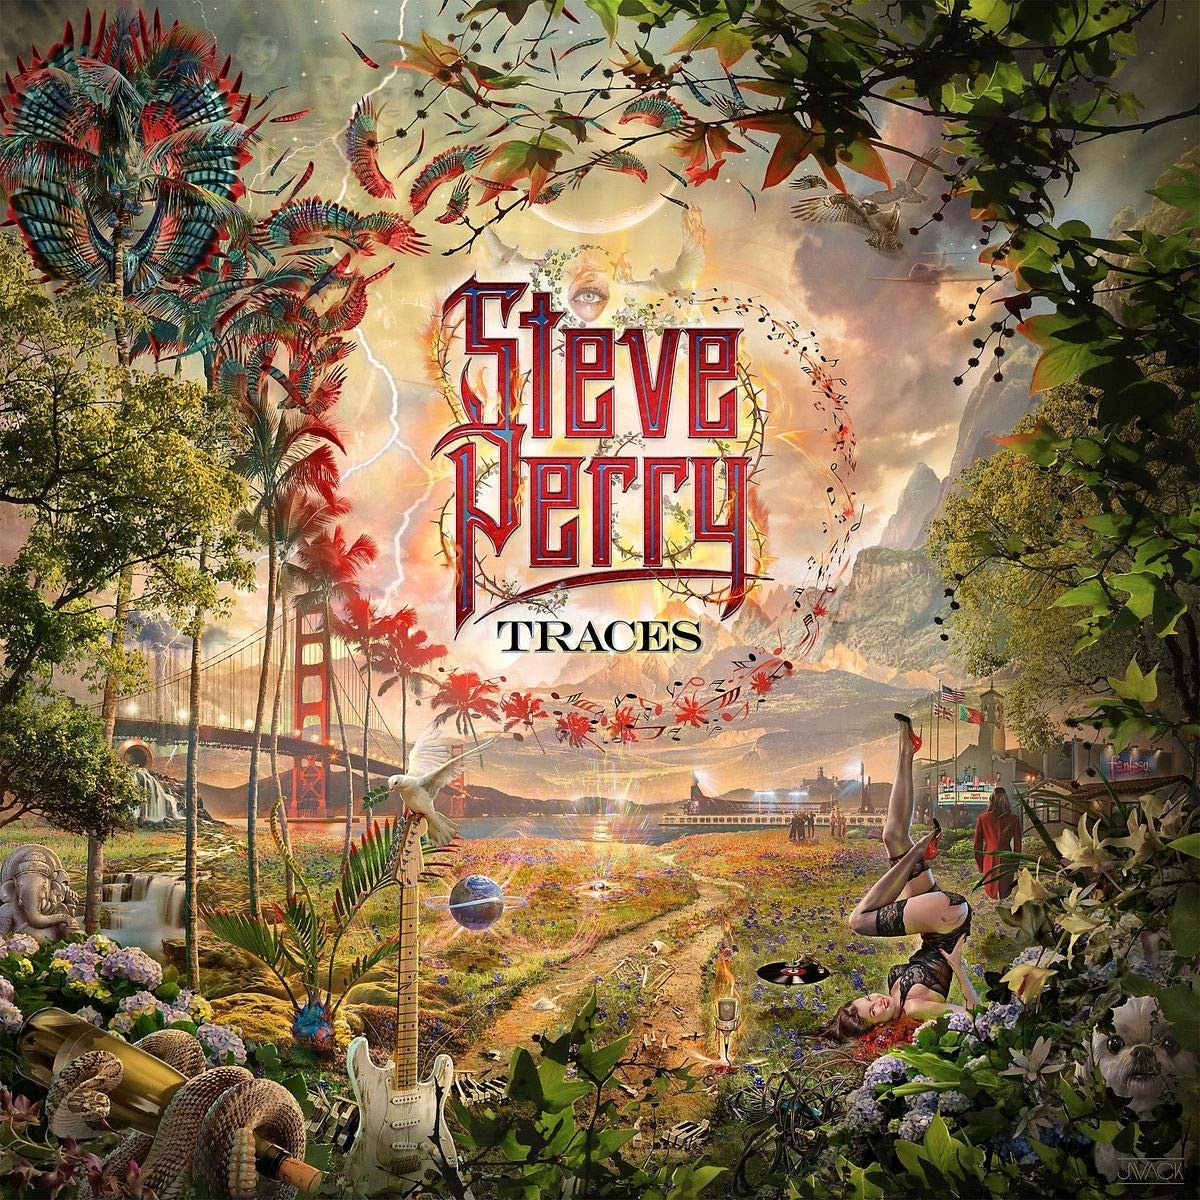 Steve Perry Traces Album Cover Meaning